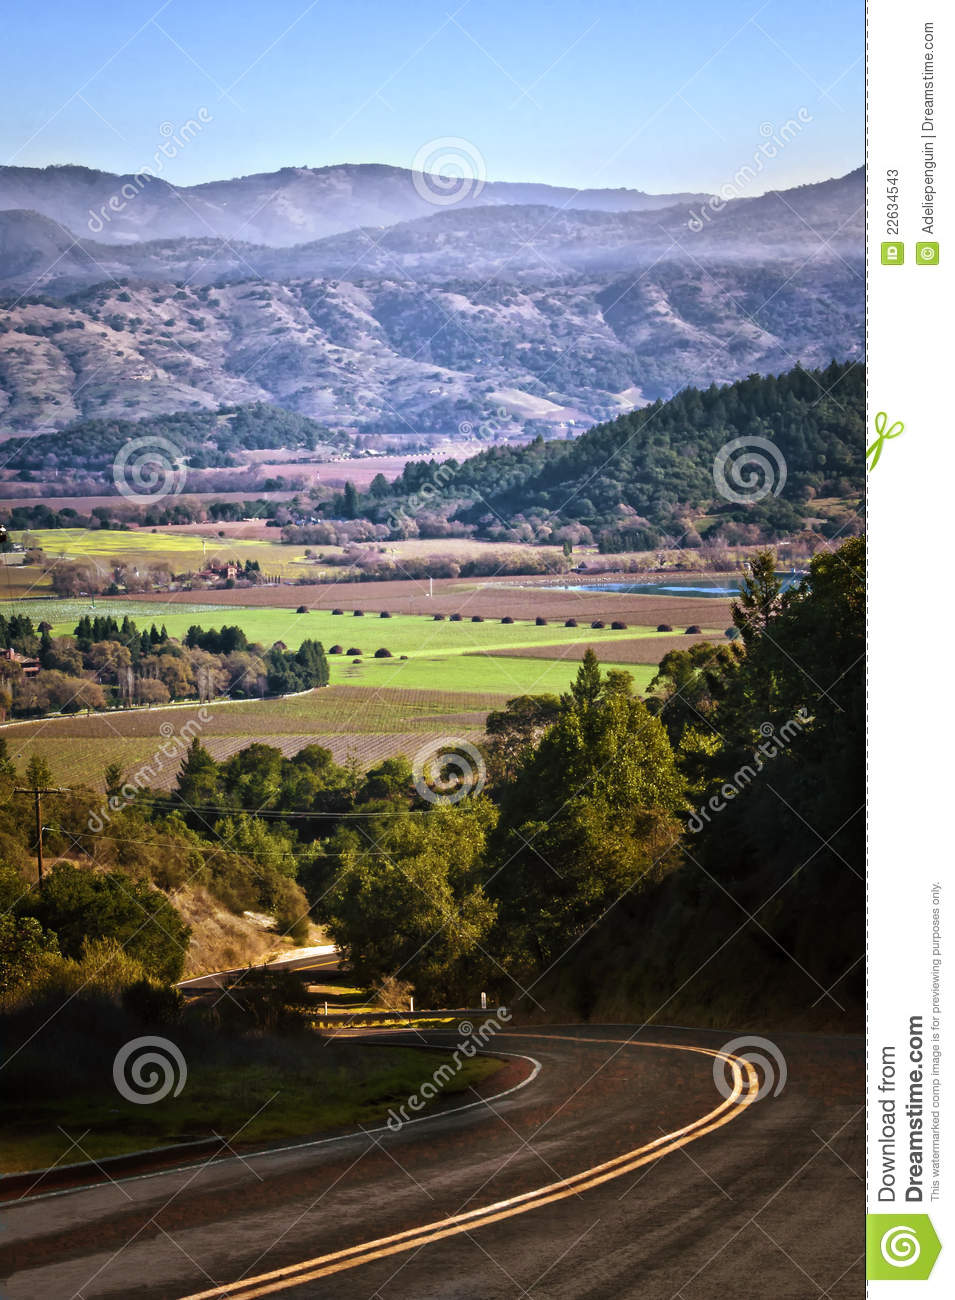 Time Road Id Roblox: Back Road Into Napa Valley, California Stock Photos